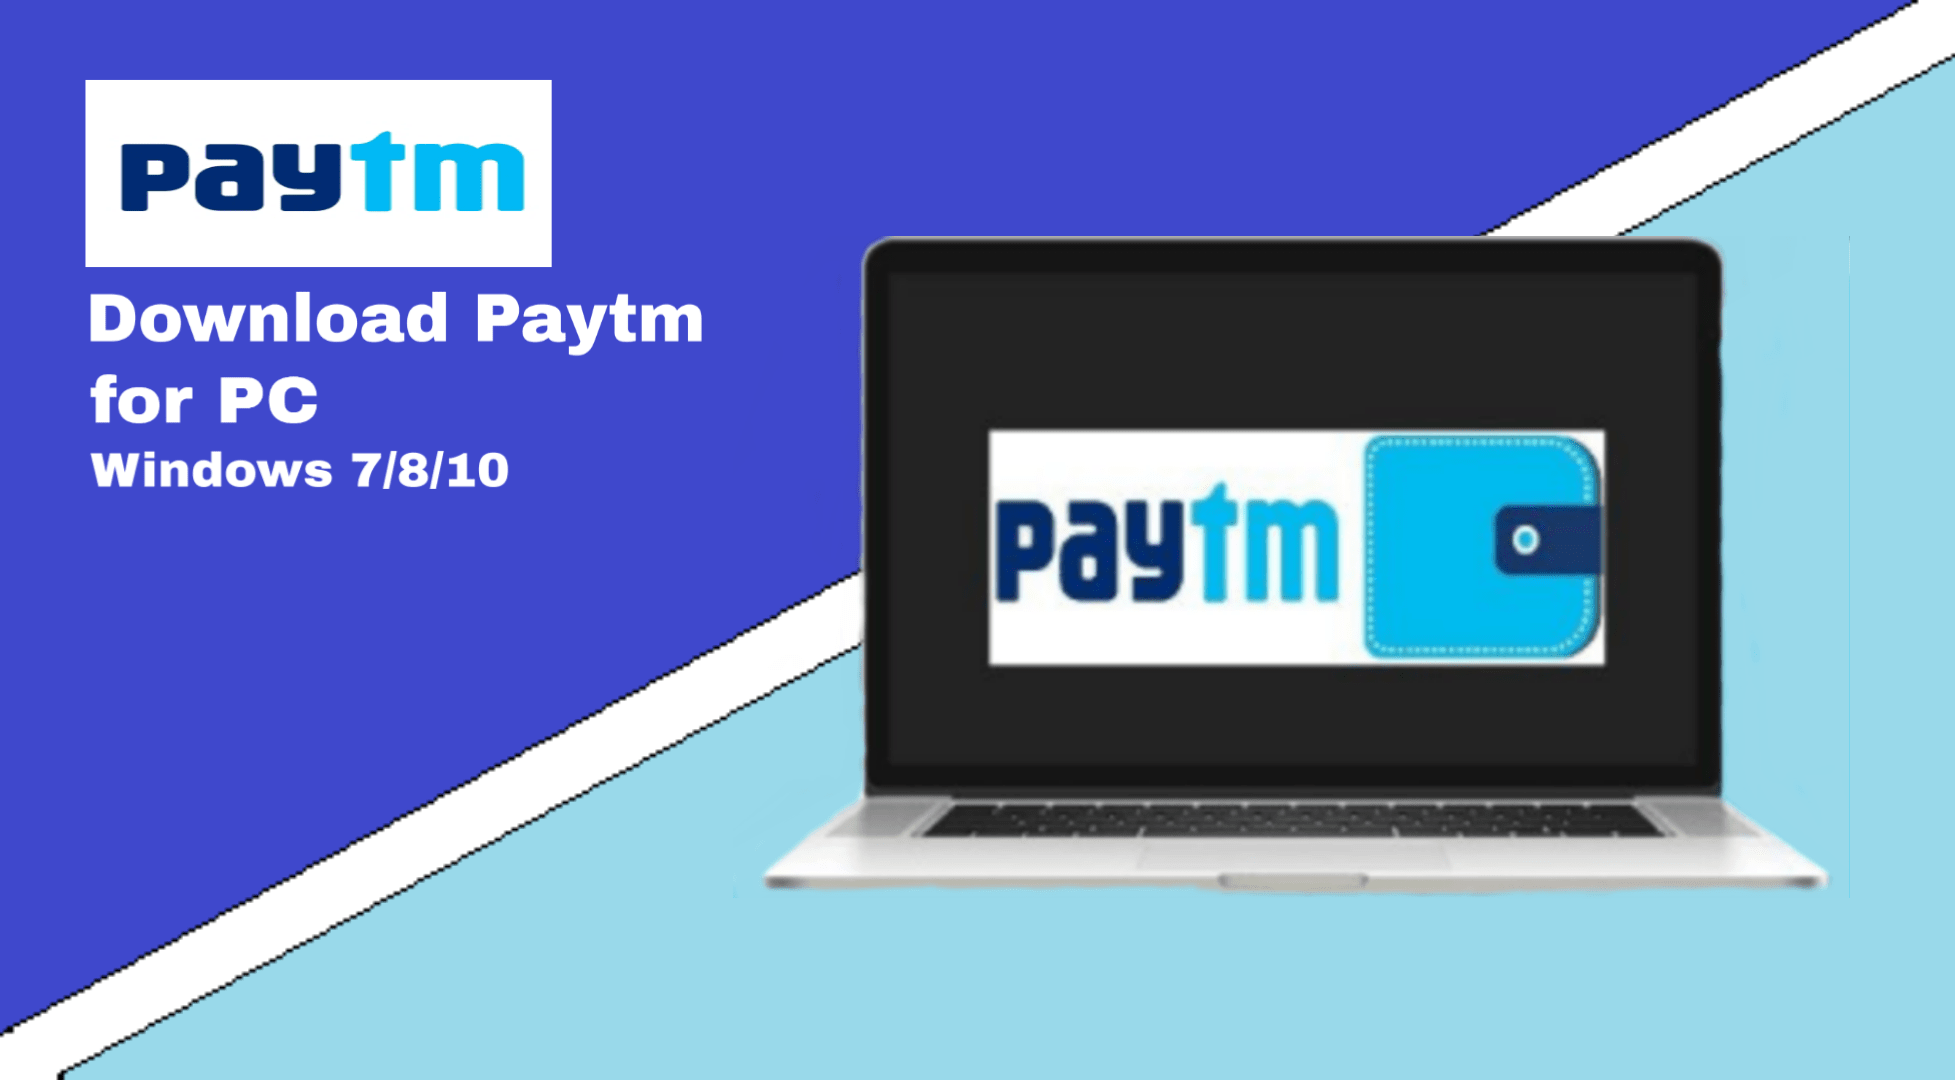 Paytm for PC